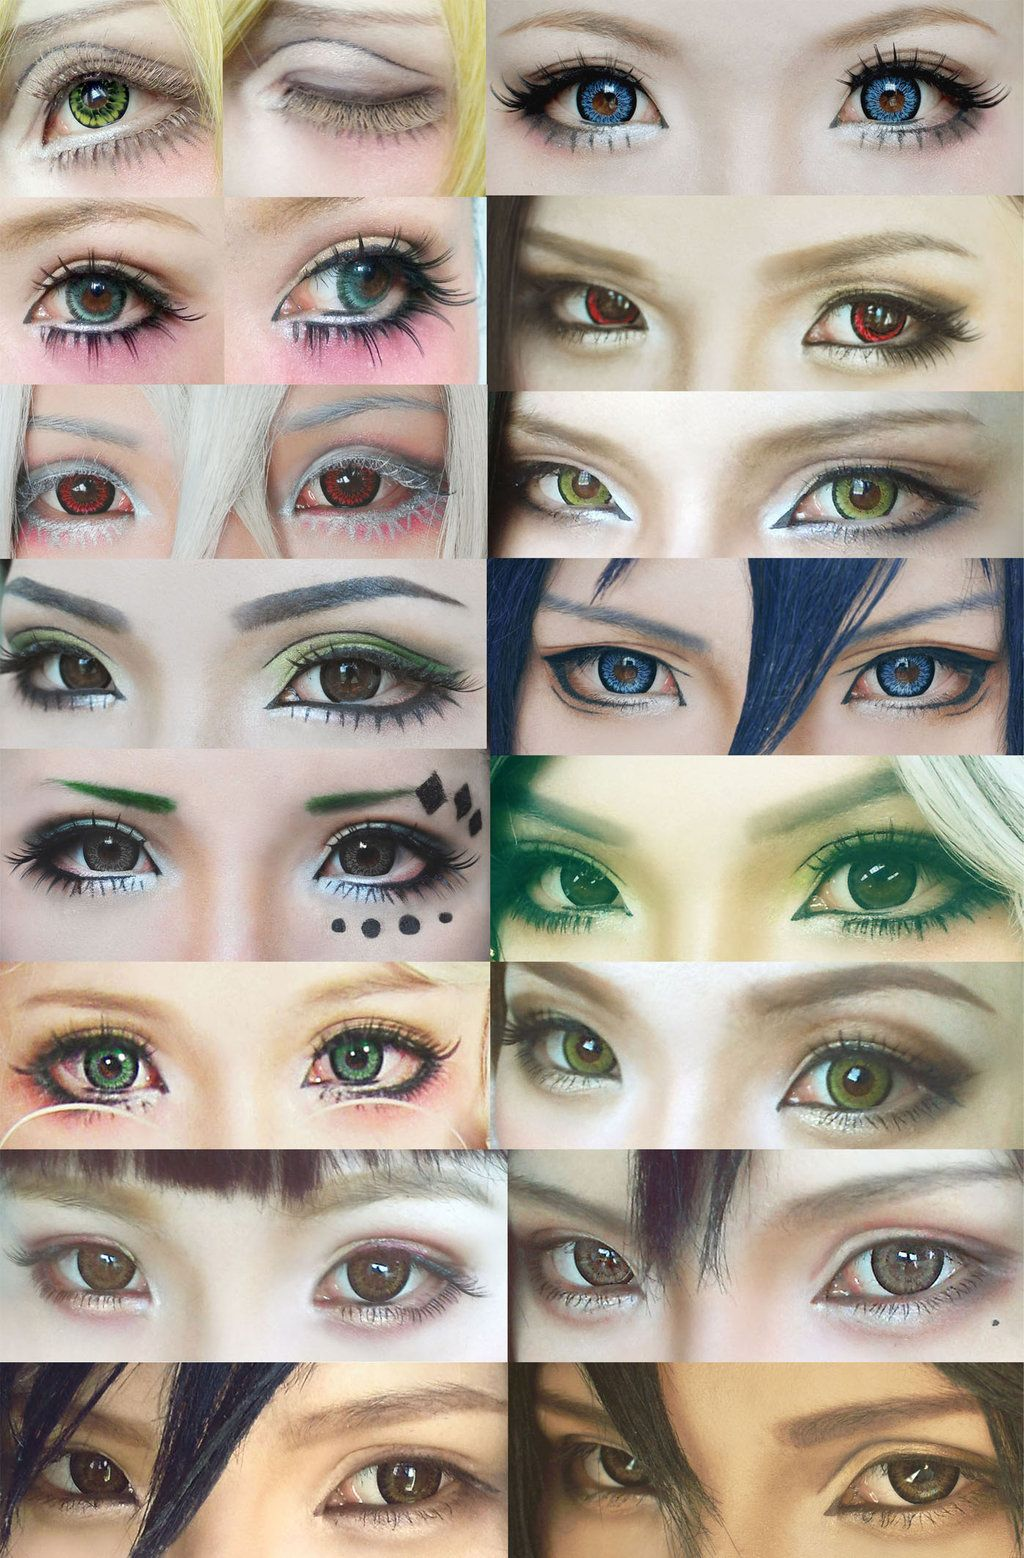 Cosplay Eyes Make Up Collection 4 By Mollyeberwein Deviantart Com